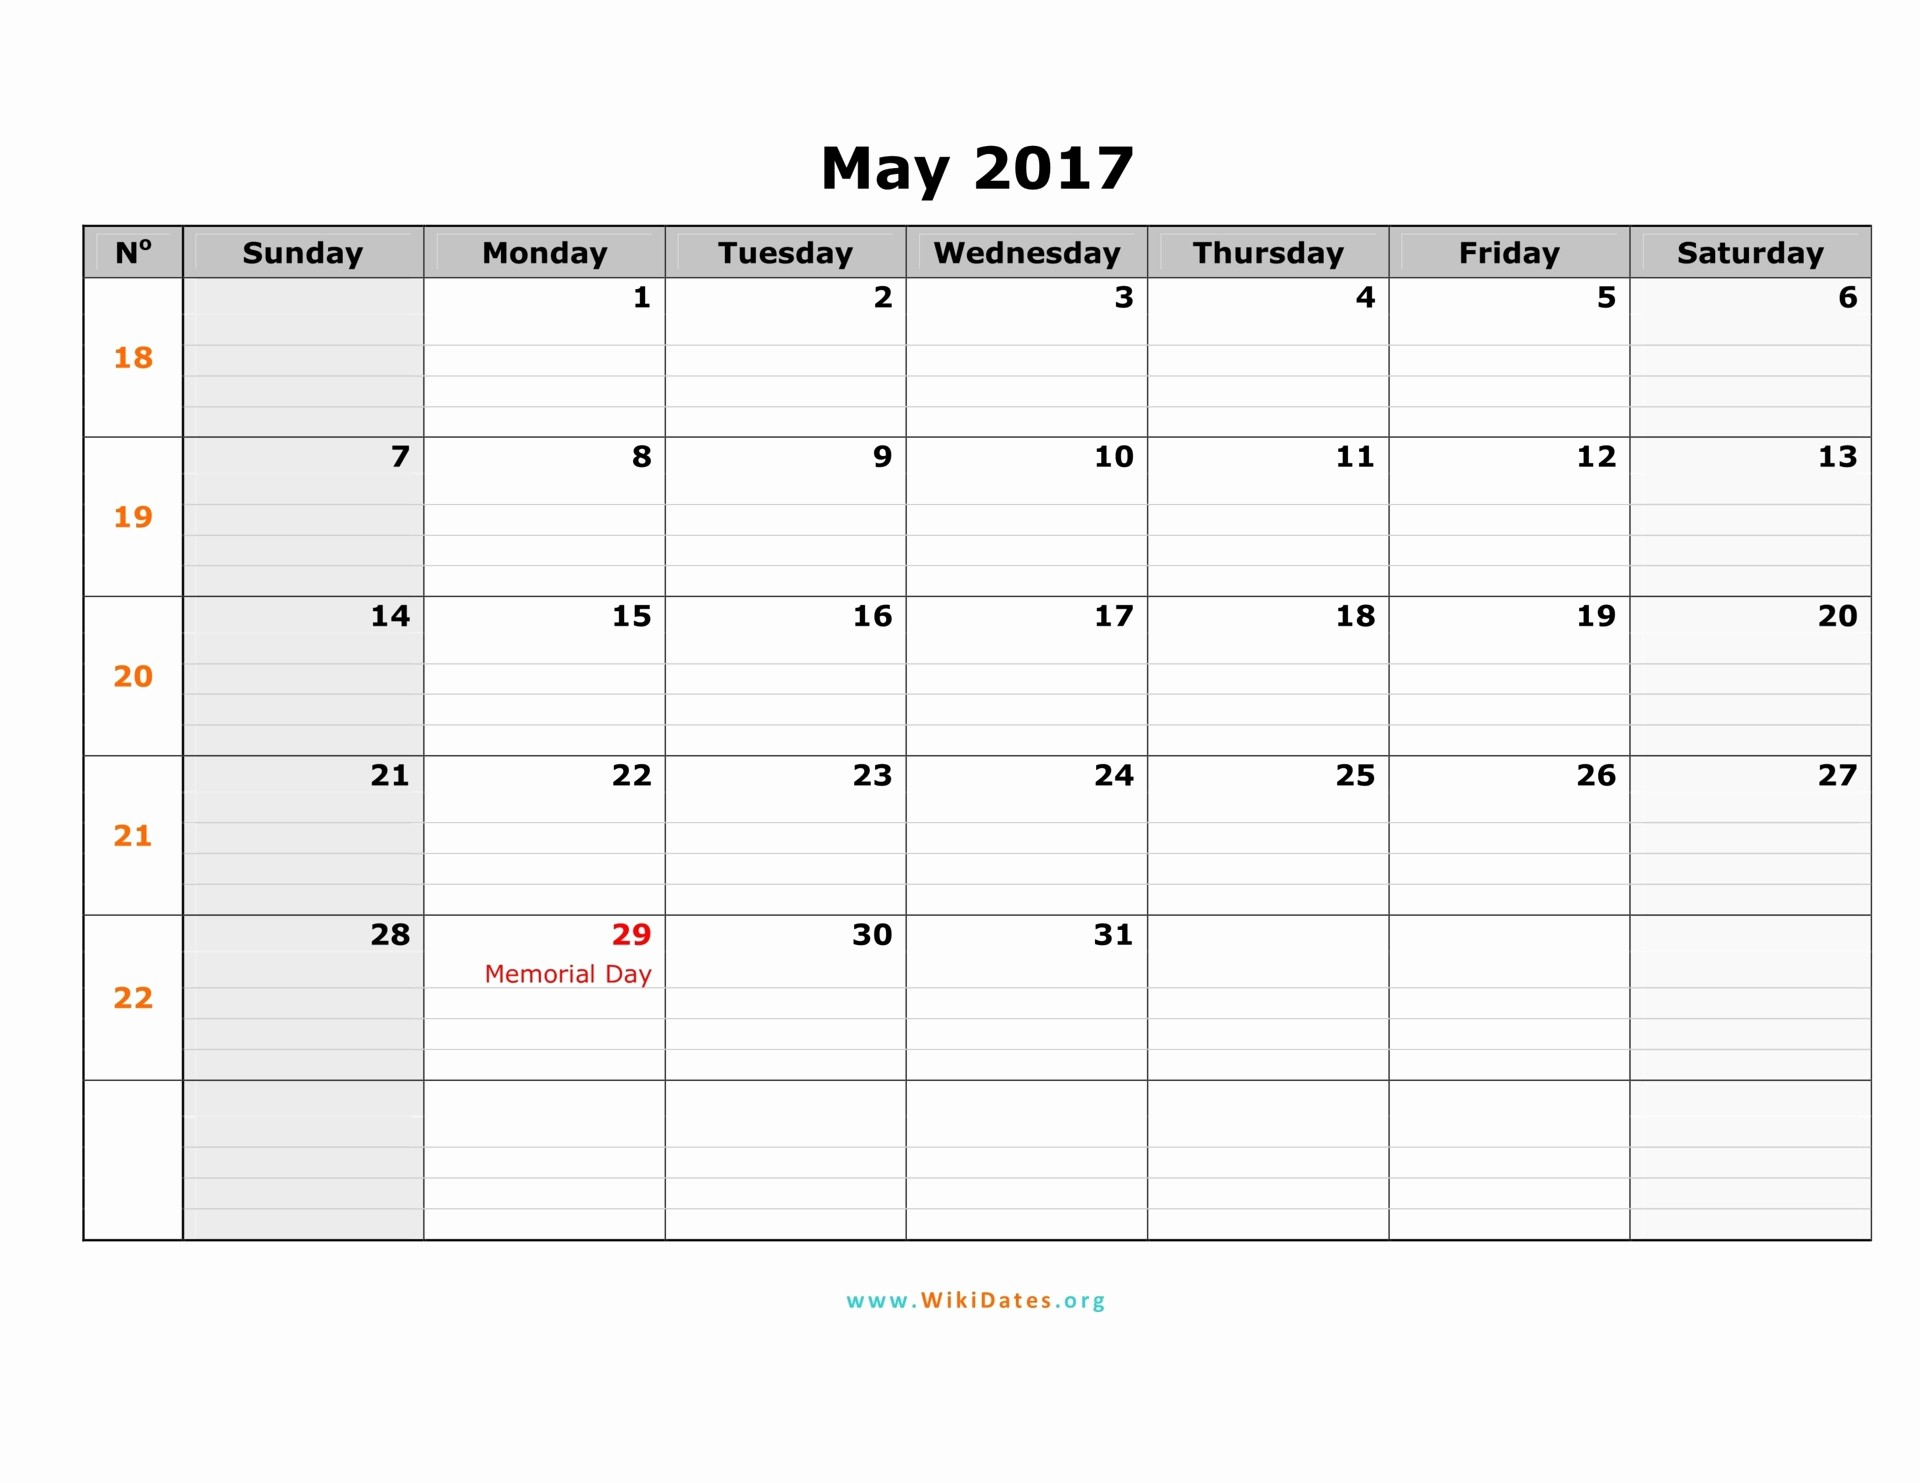 2017 Weekly Calendar with Holidays Unique May 2017 Calendar Printable with Holidays